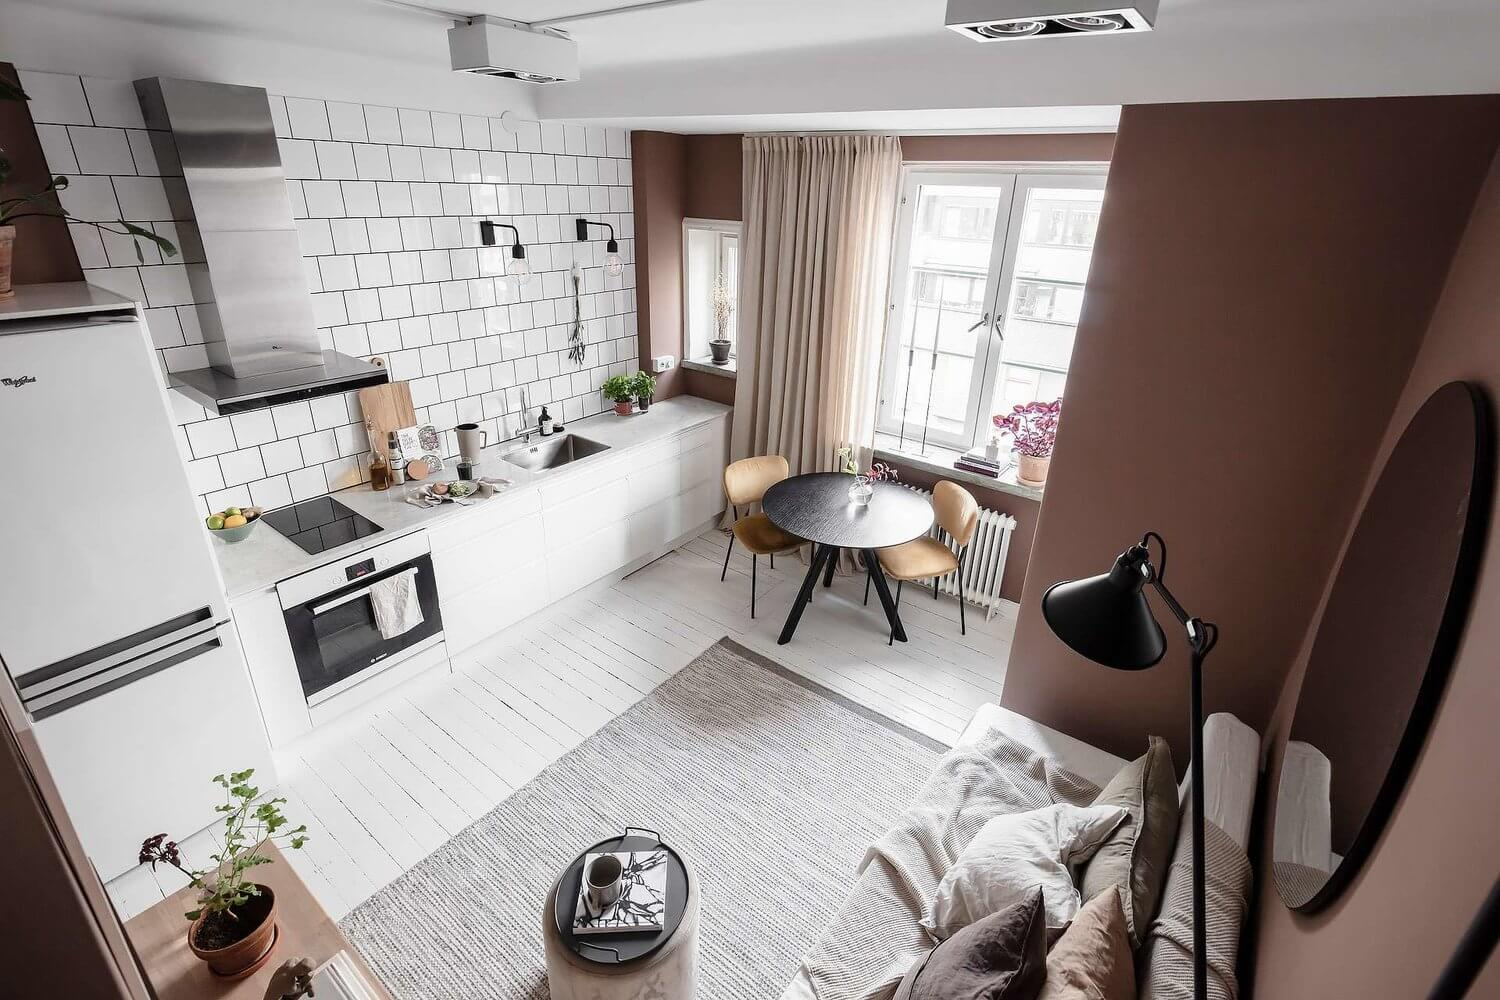 A Tiny Pink Studio Apartment with Loft Bed and Walk in Closet